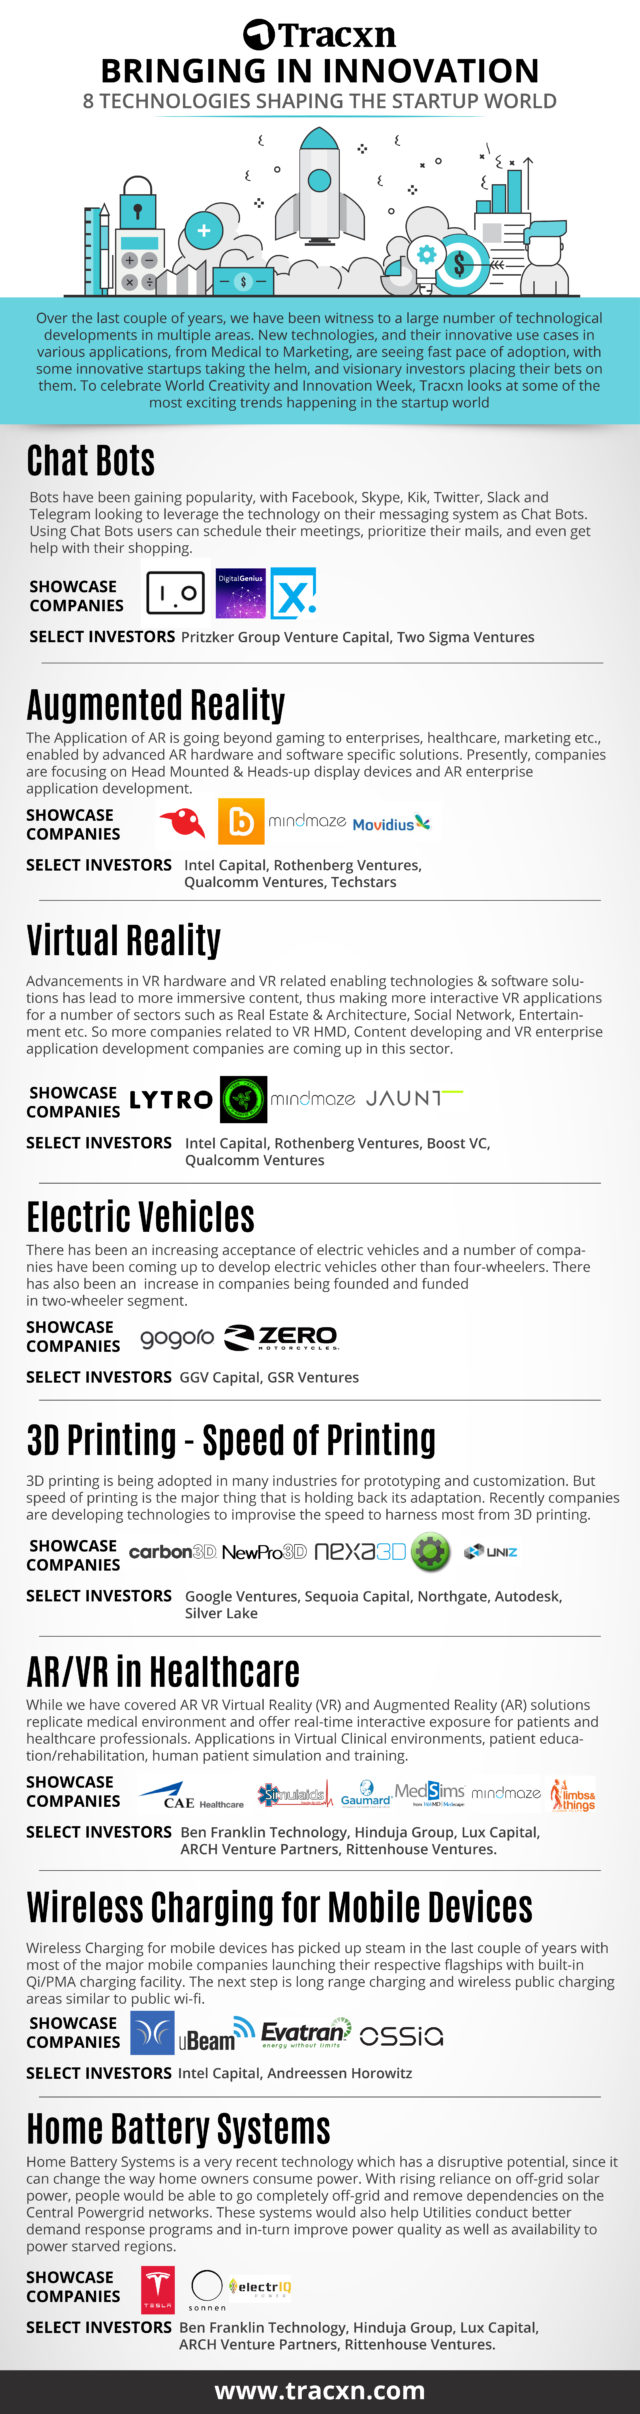 8 technologies shaping the startup world (1)